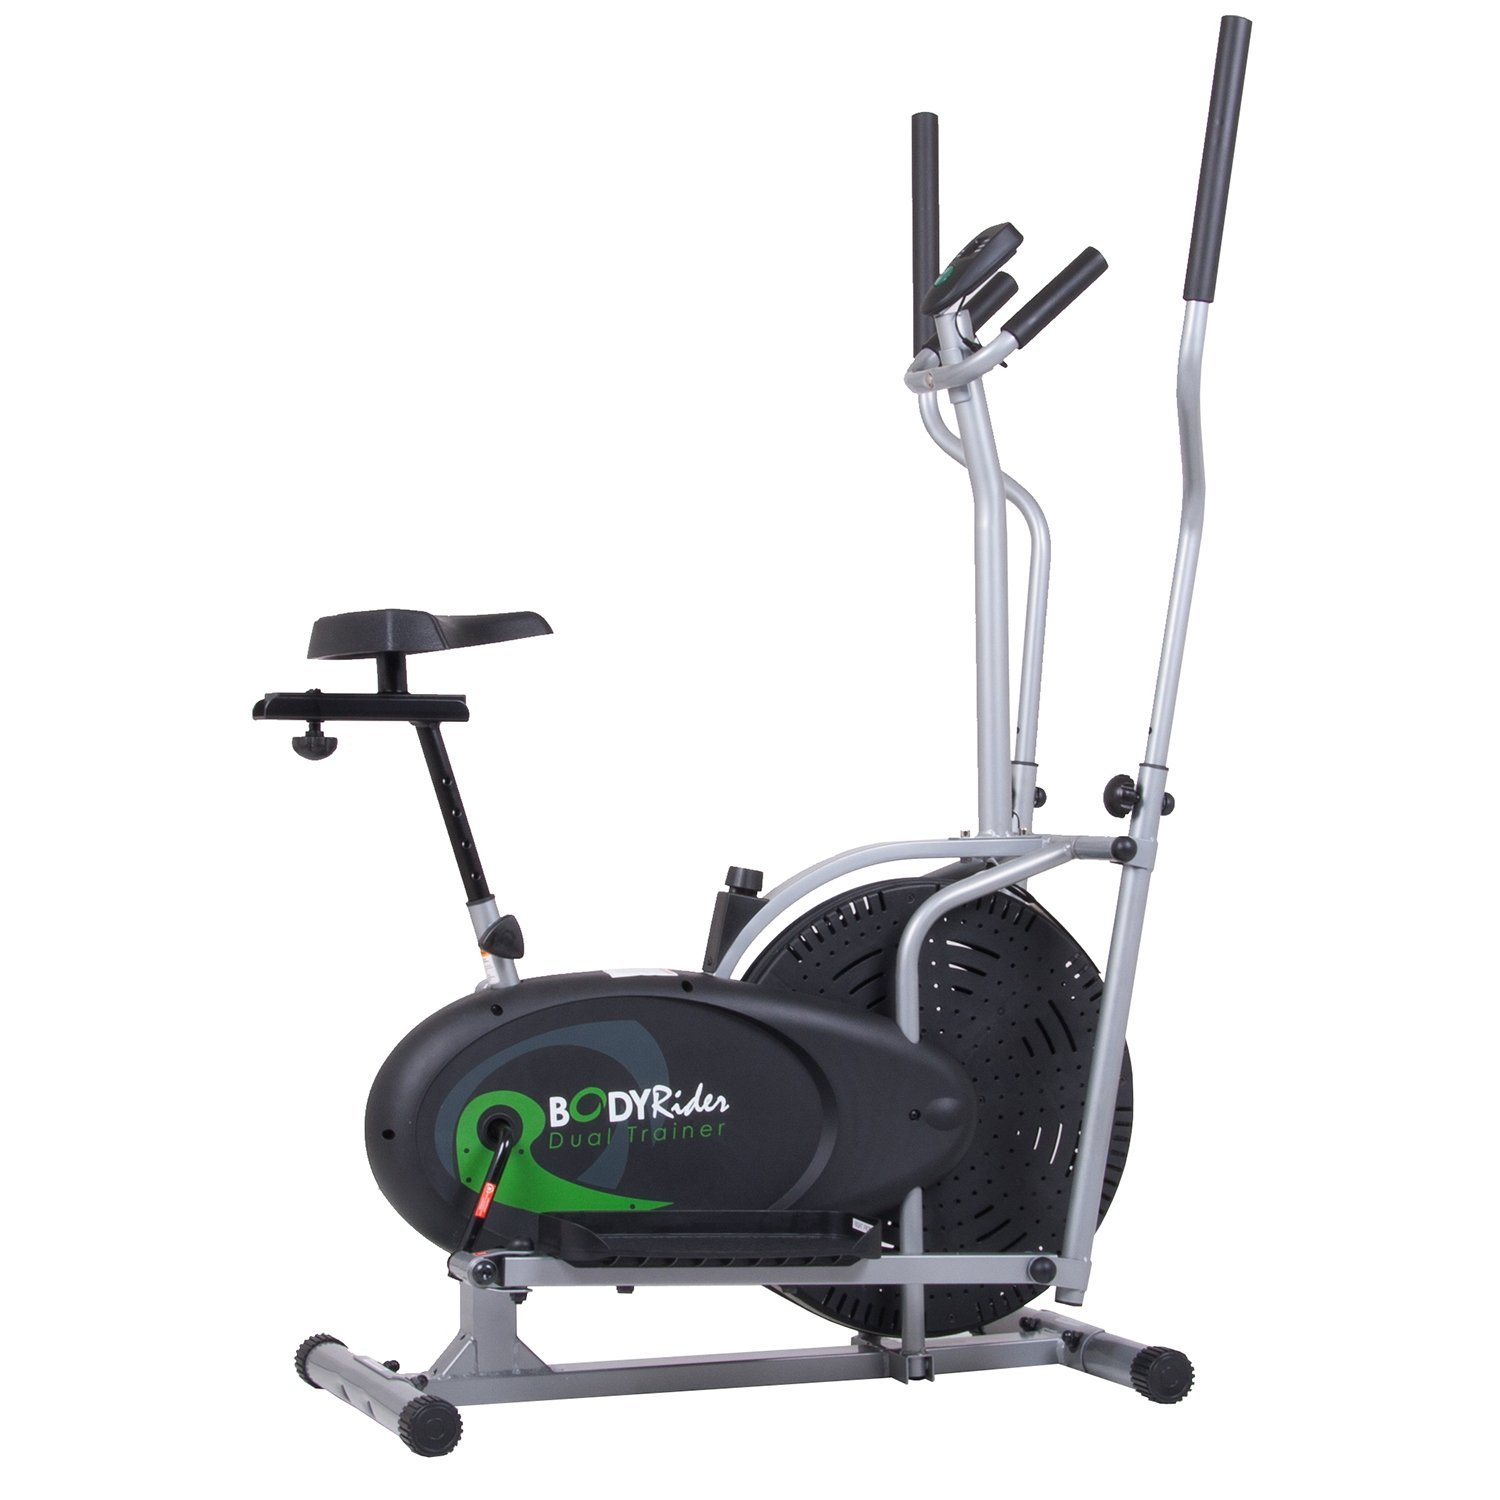 Body_Rider_BRD2000_Elliptical_Trainer